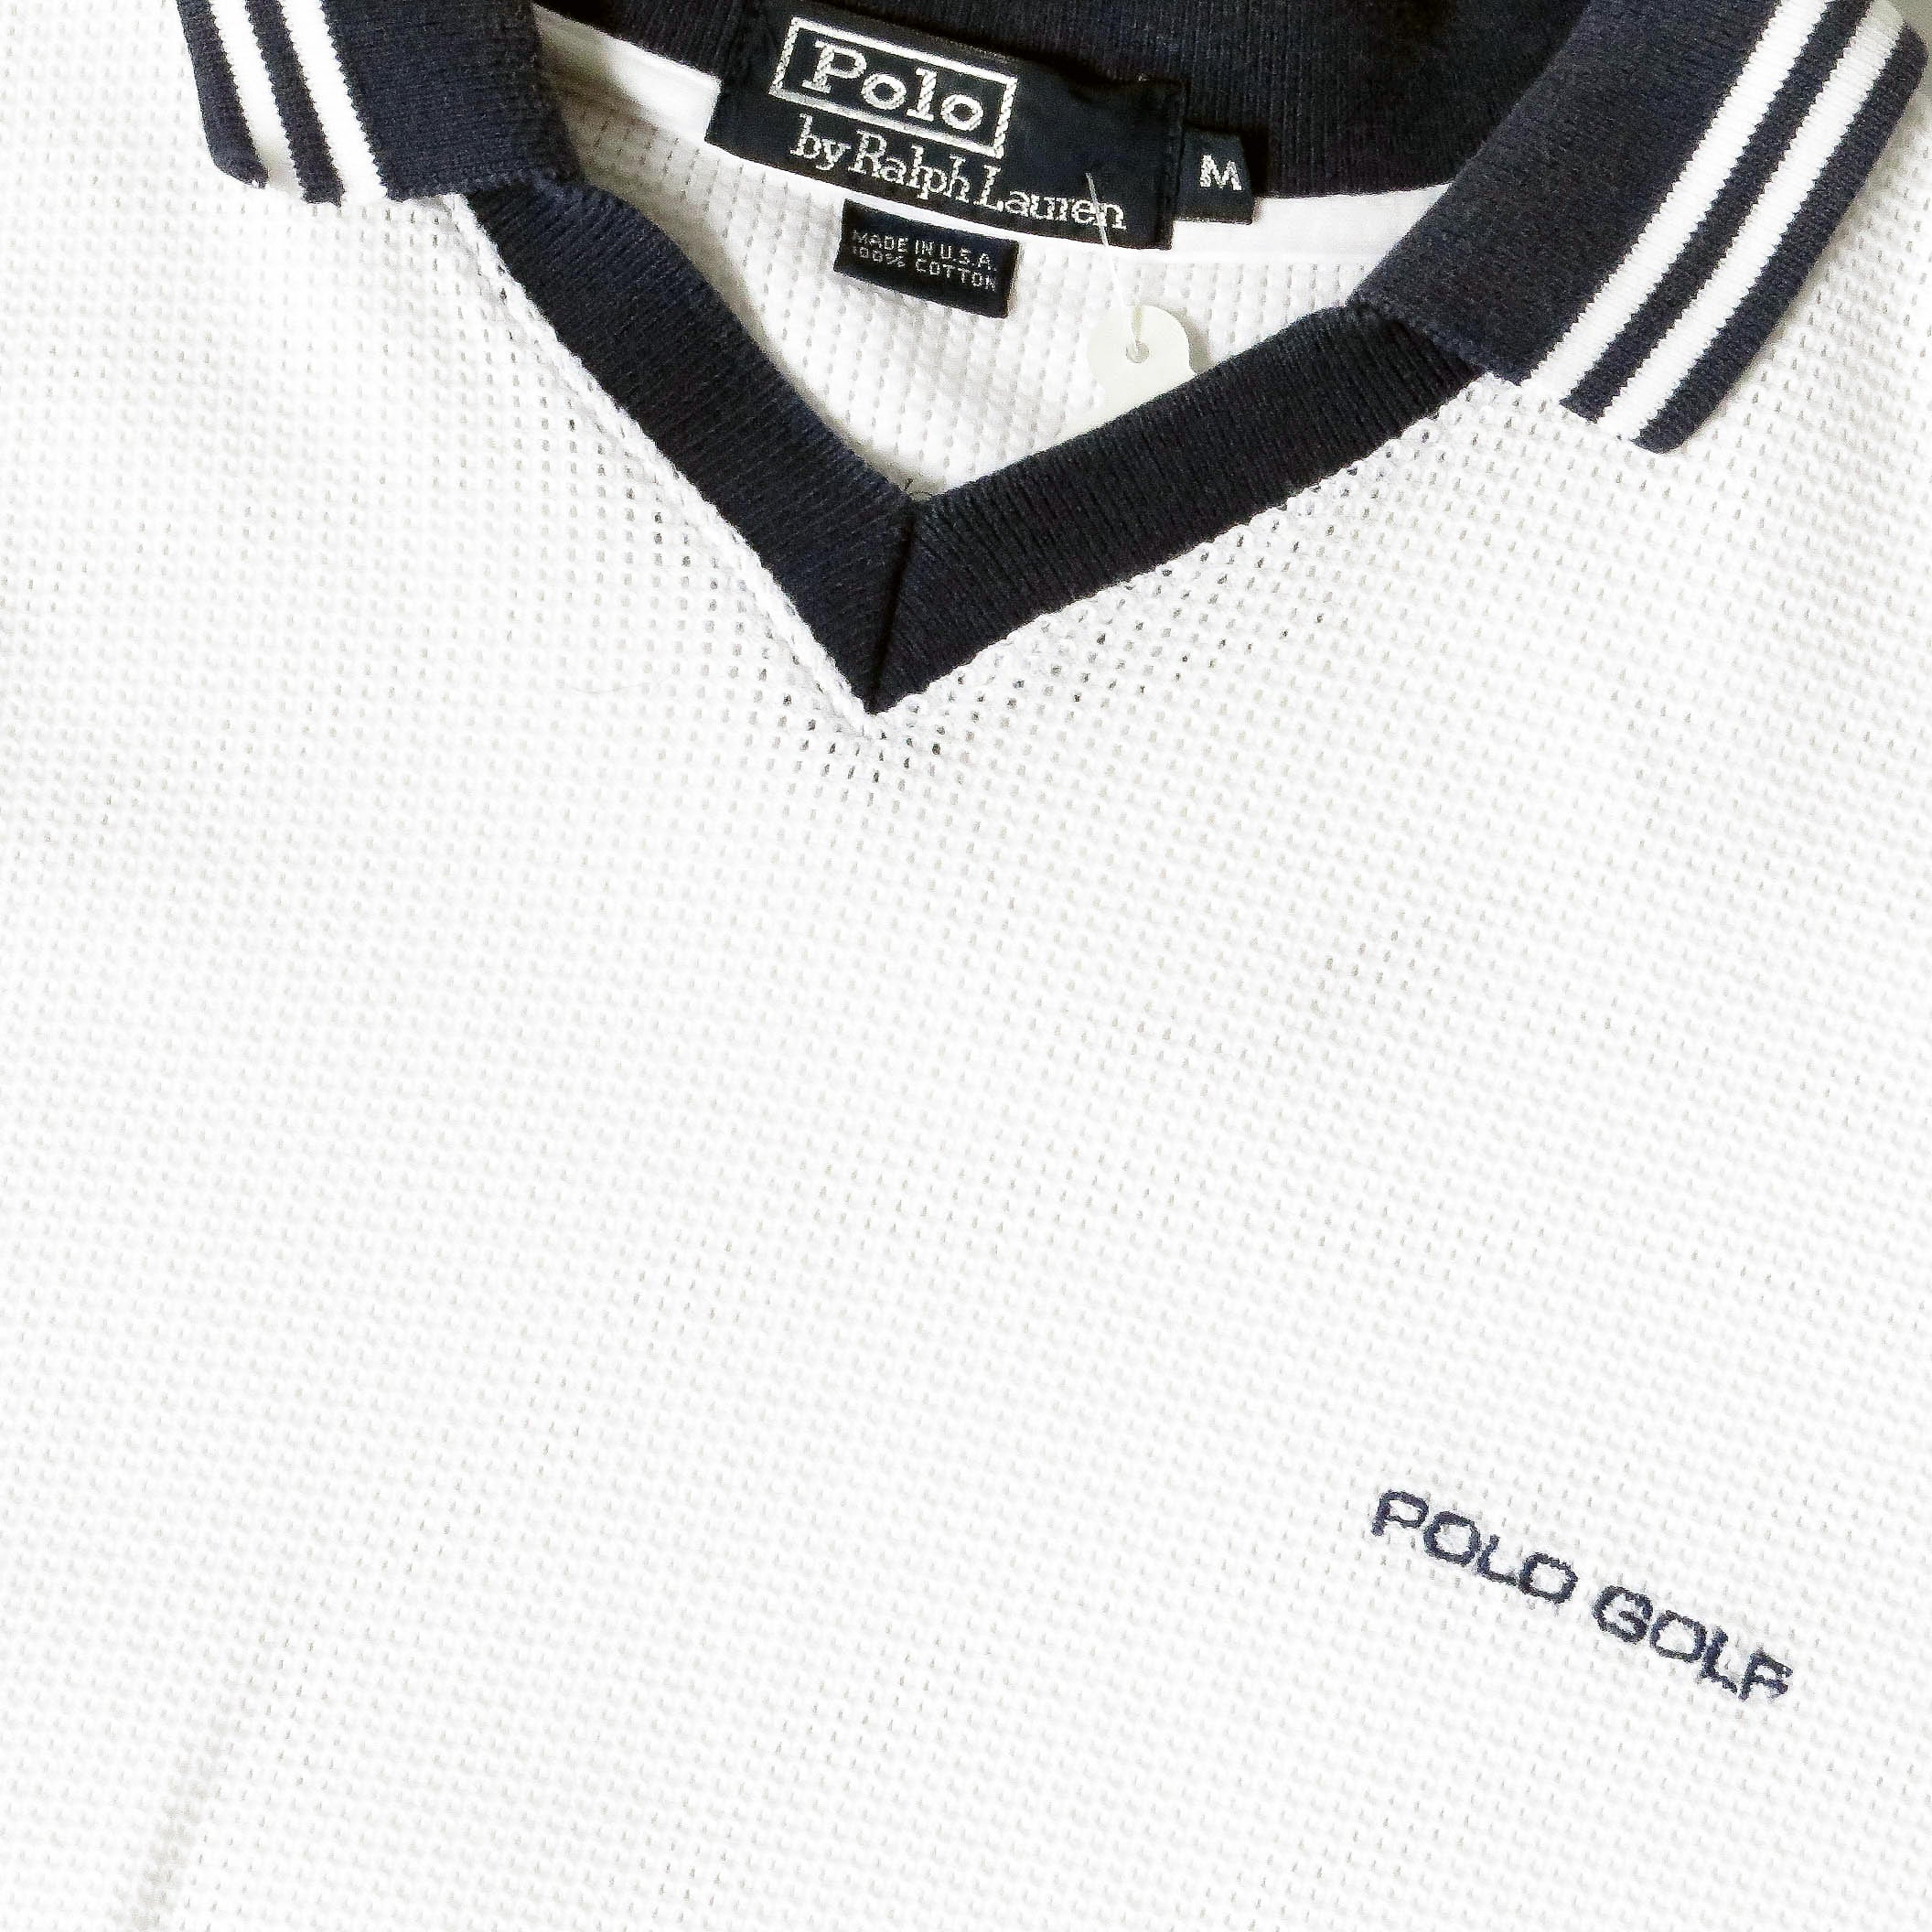 Vintage Ralph Lauren Polo Golf Shirt Sz M